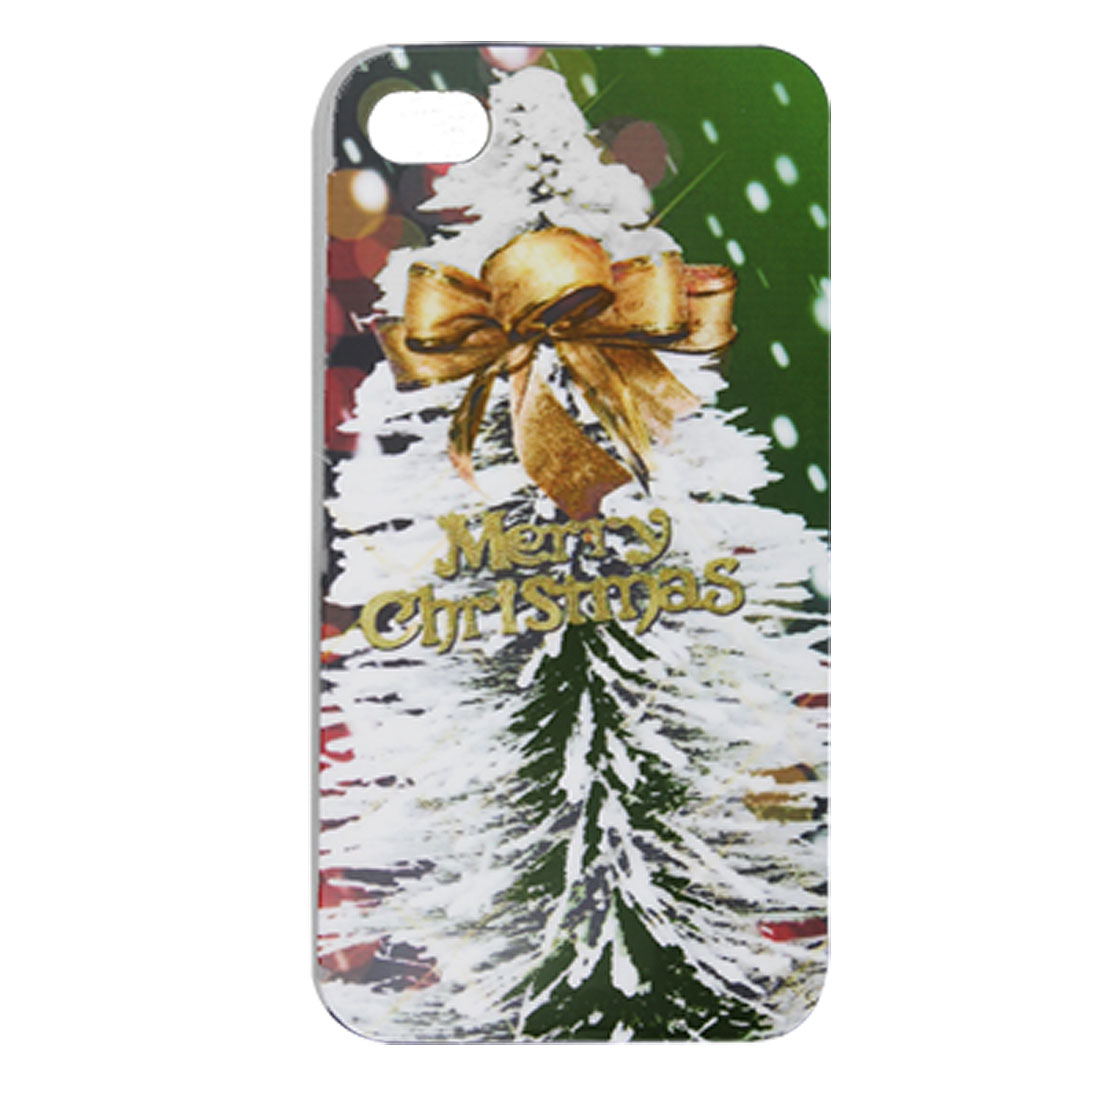 Tree Bowknot X'mas Hard Plastic Cover for iPhone 4 4G